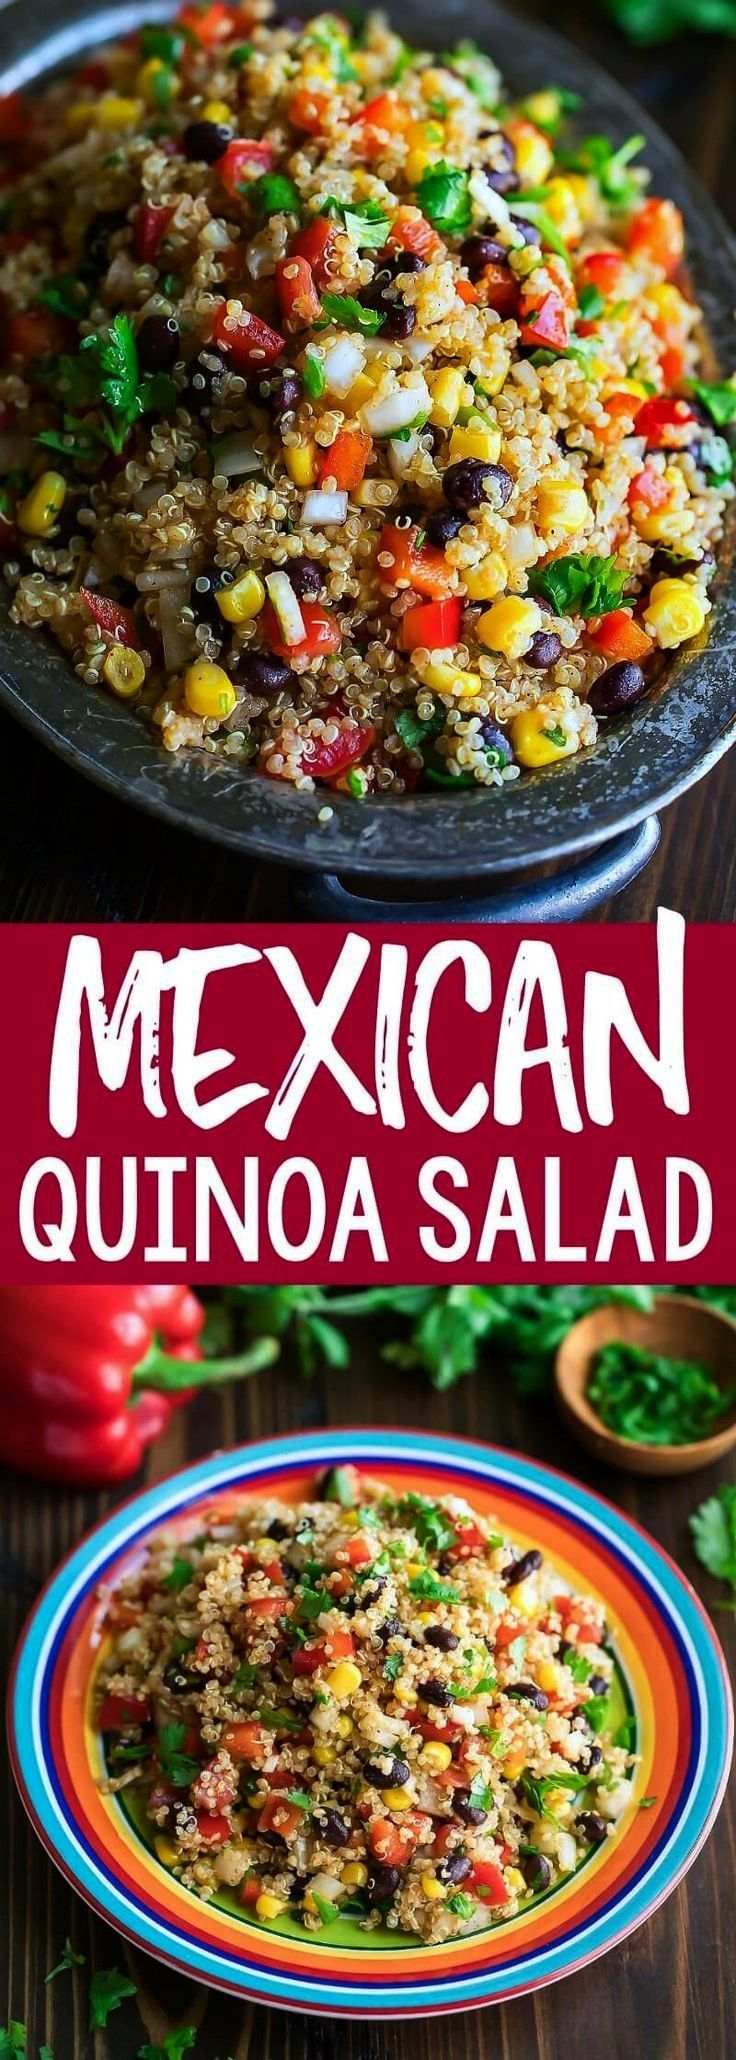 Quinoa Salad This healthy Mexican Quinoa Salad is a quick, easy, and gloriously make-ahead dish! To